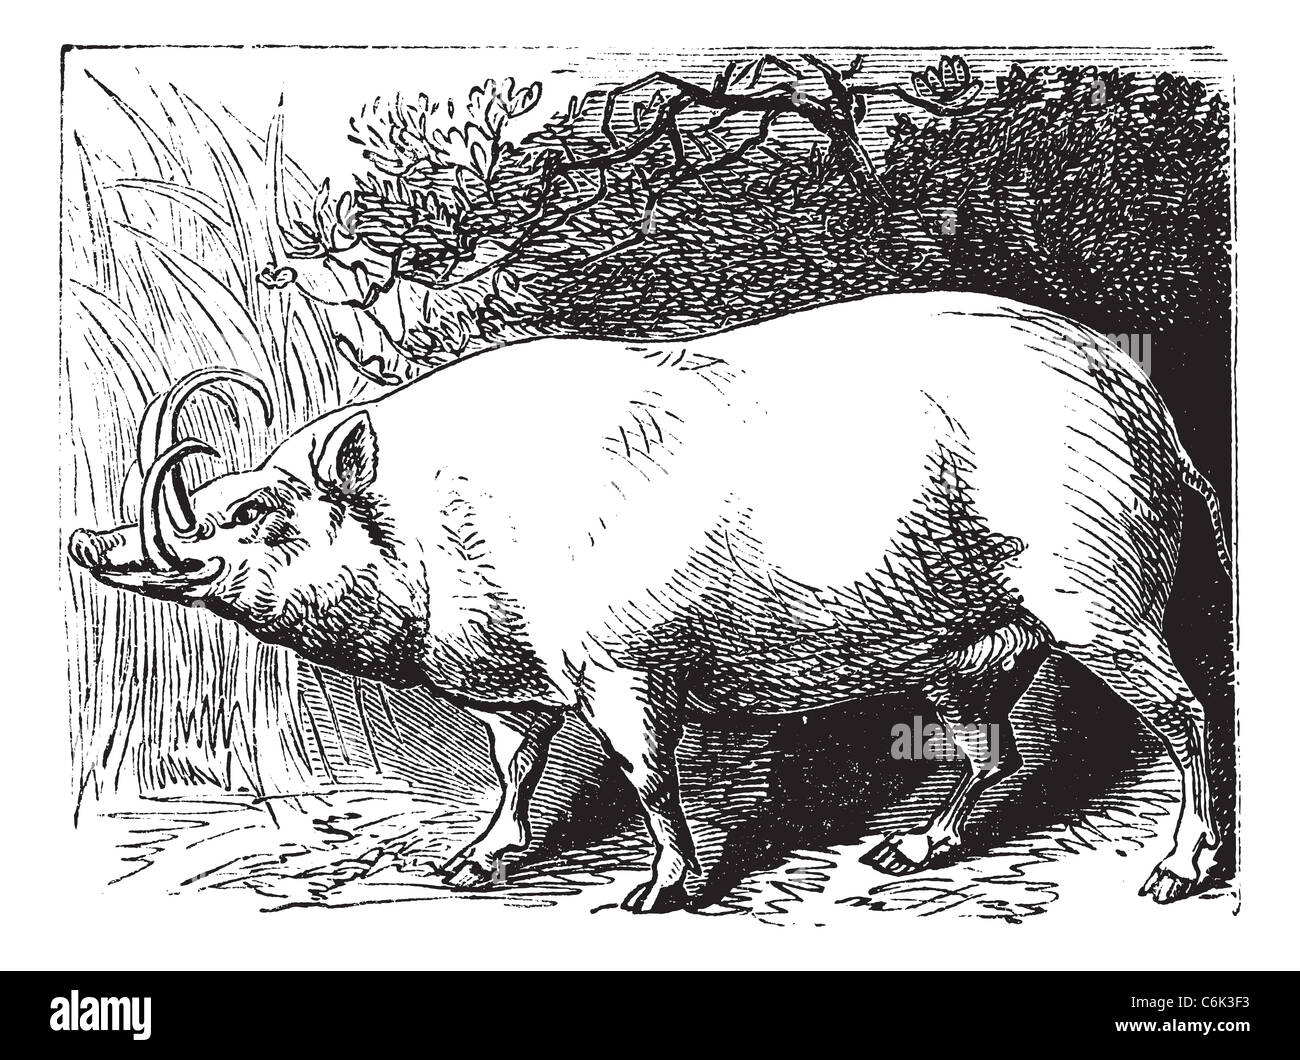 Babyrousa, Buru babirusa. Vintage engraving. Old engraved illustration of a a pig-deer specially found in Indonesia. - Stock Image